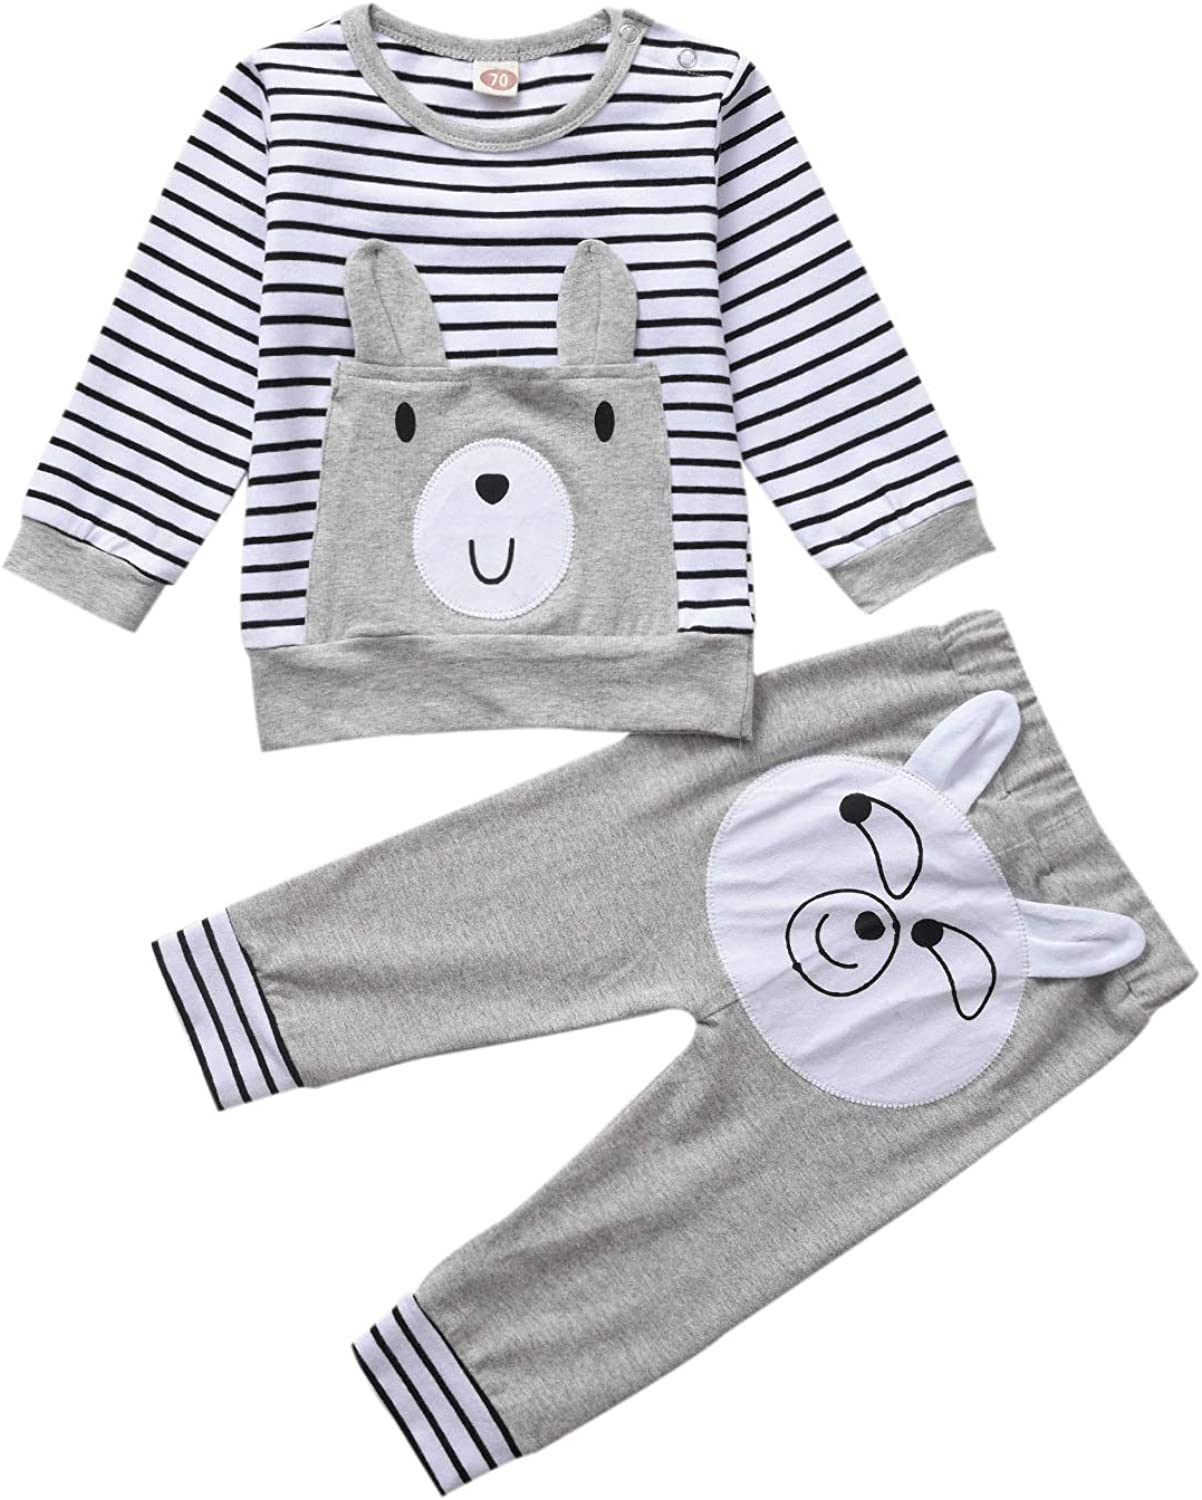 2 Pieces Long Sleeved Cute Toddler Baby Infant Outfits Set with Kids Tops and Pants Set